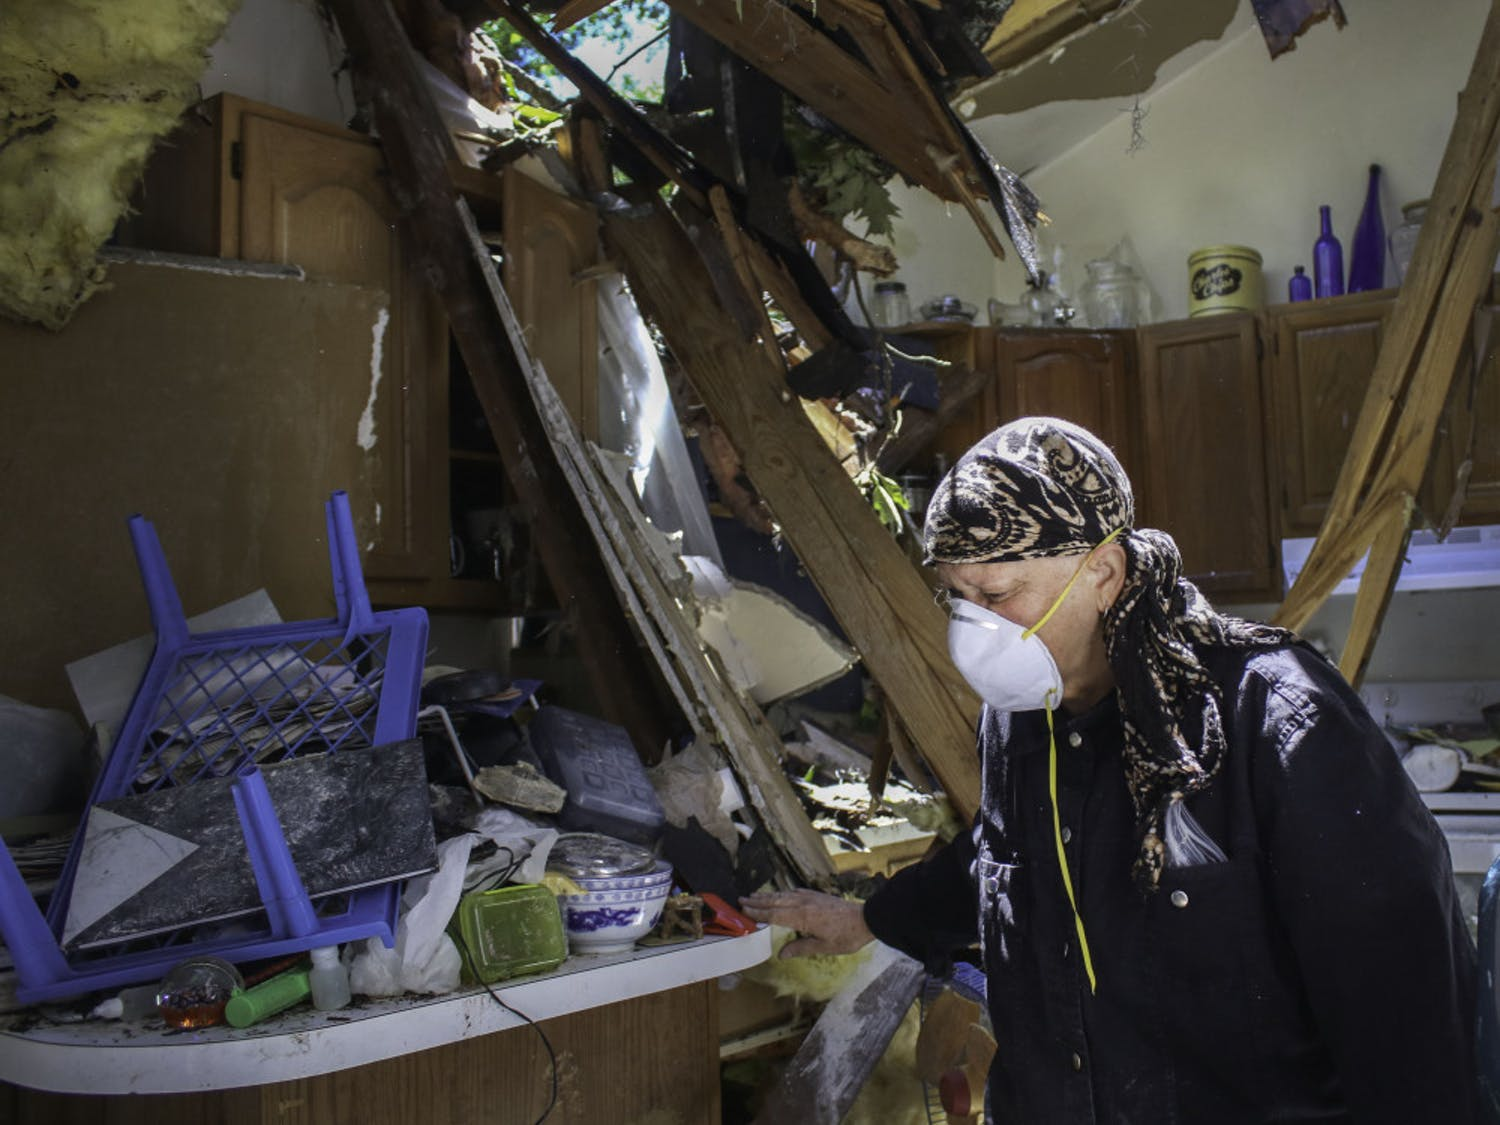 Alina Mitchell, 62, sorts through the debris in her kitchen after a tree crashed through the roof on Friday morning.